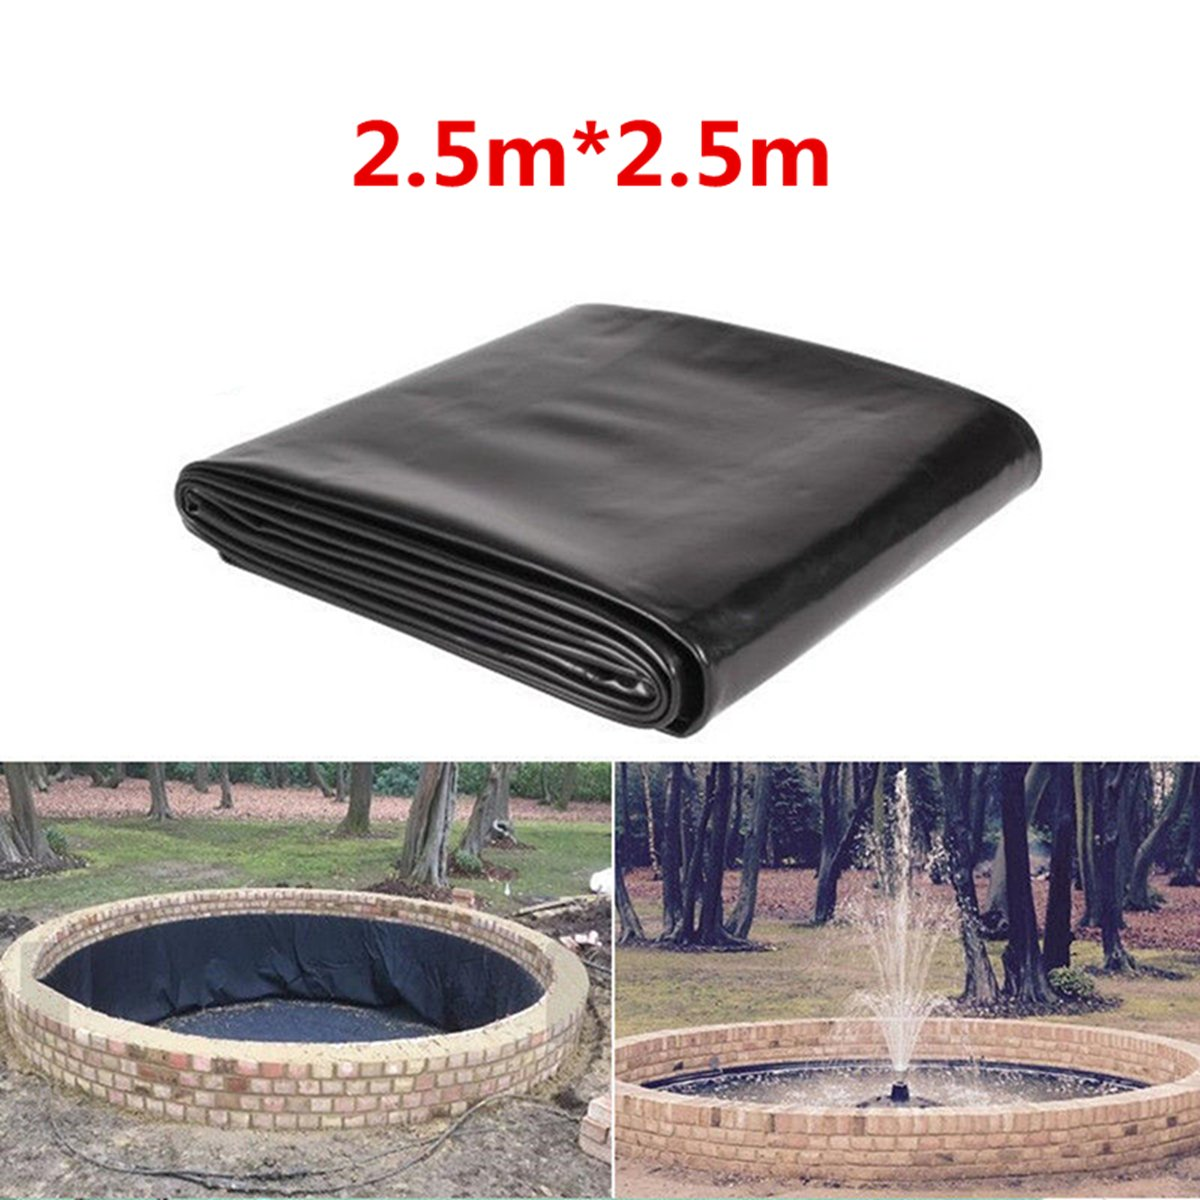 Pond Liners KINGSO Pond Skins Waterfall and Water Features Black 8FTx 8FT